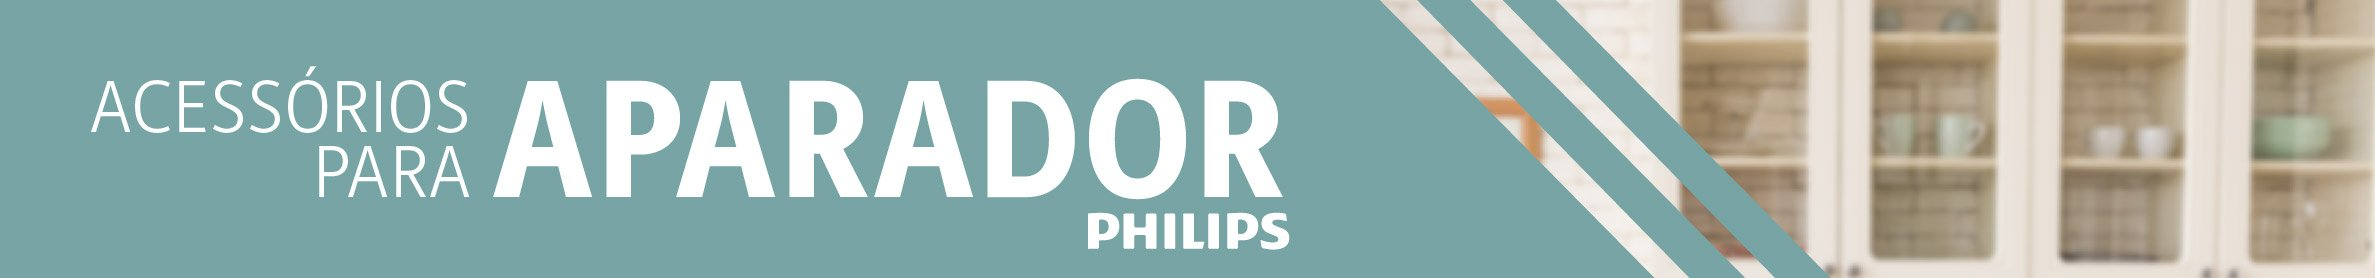 aparador-philips